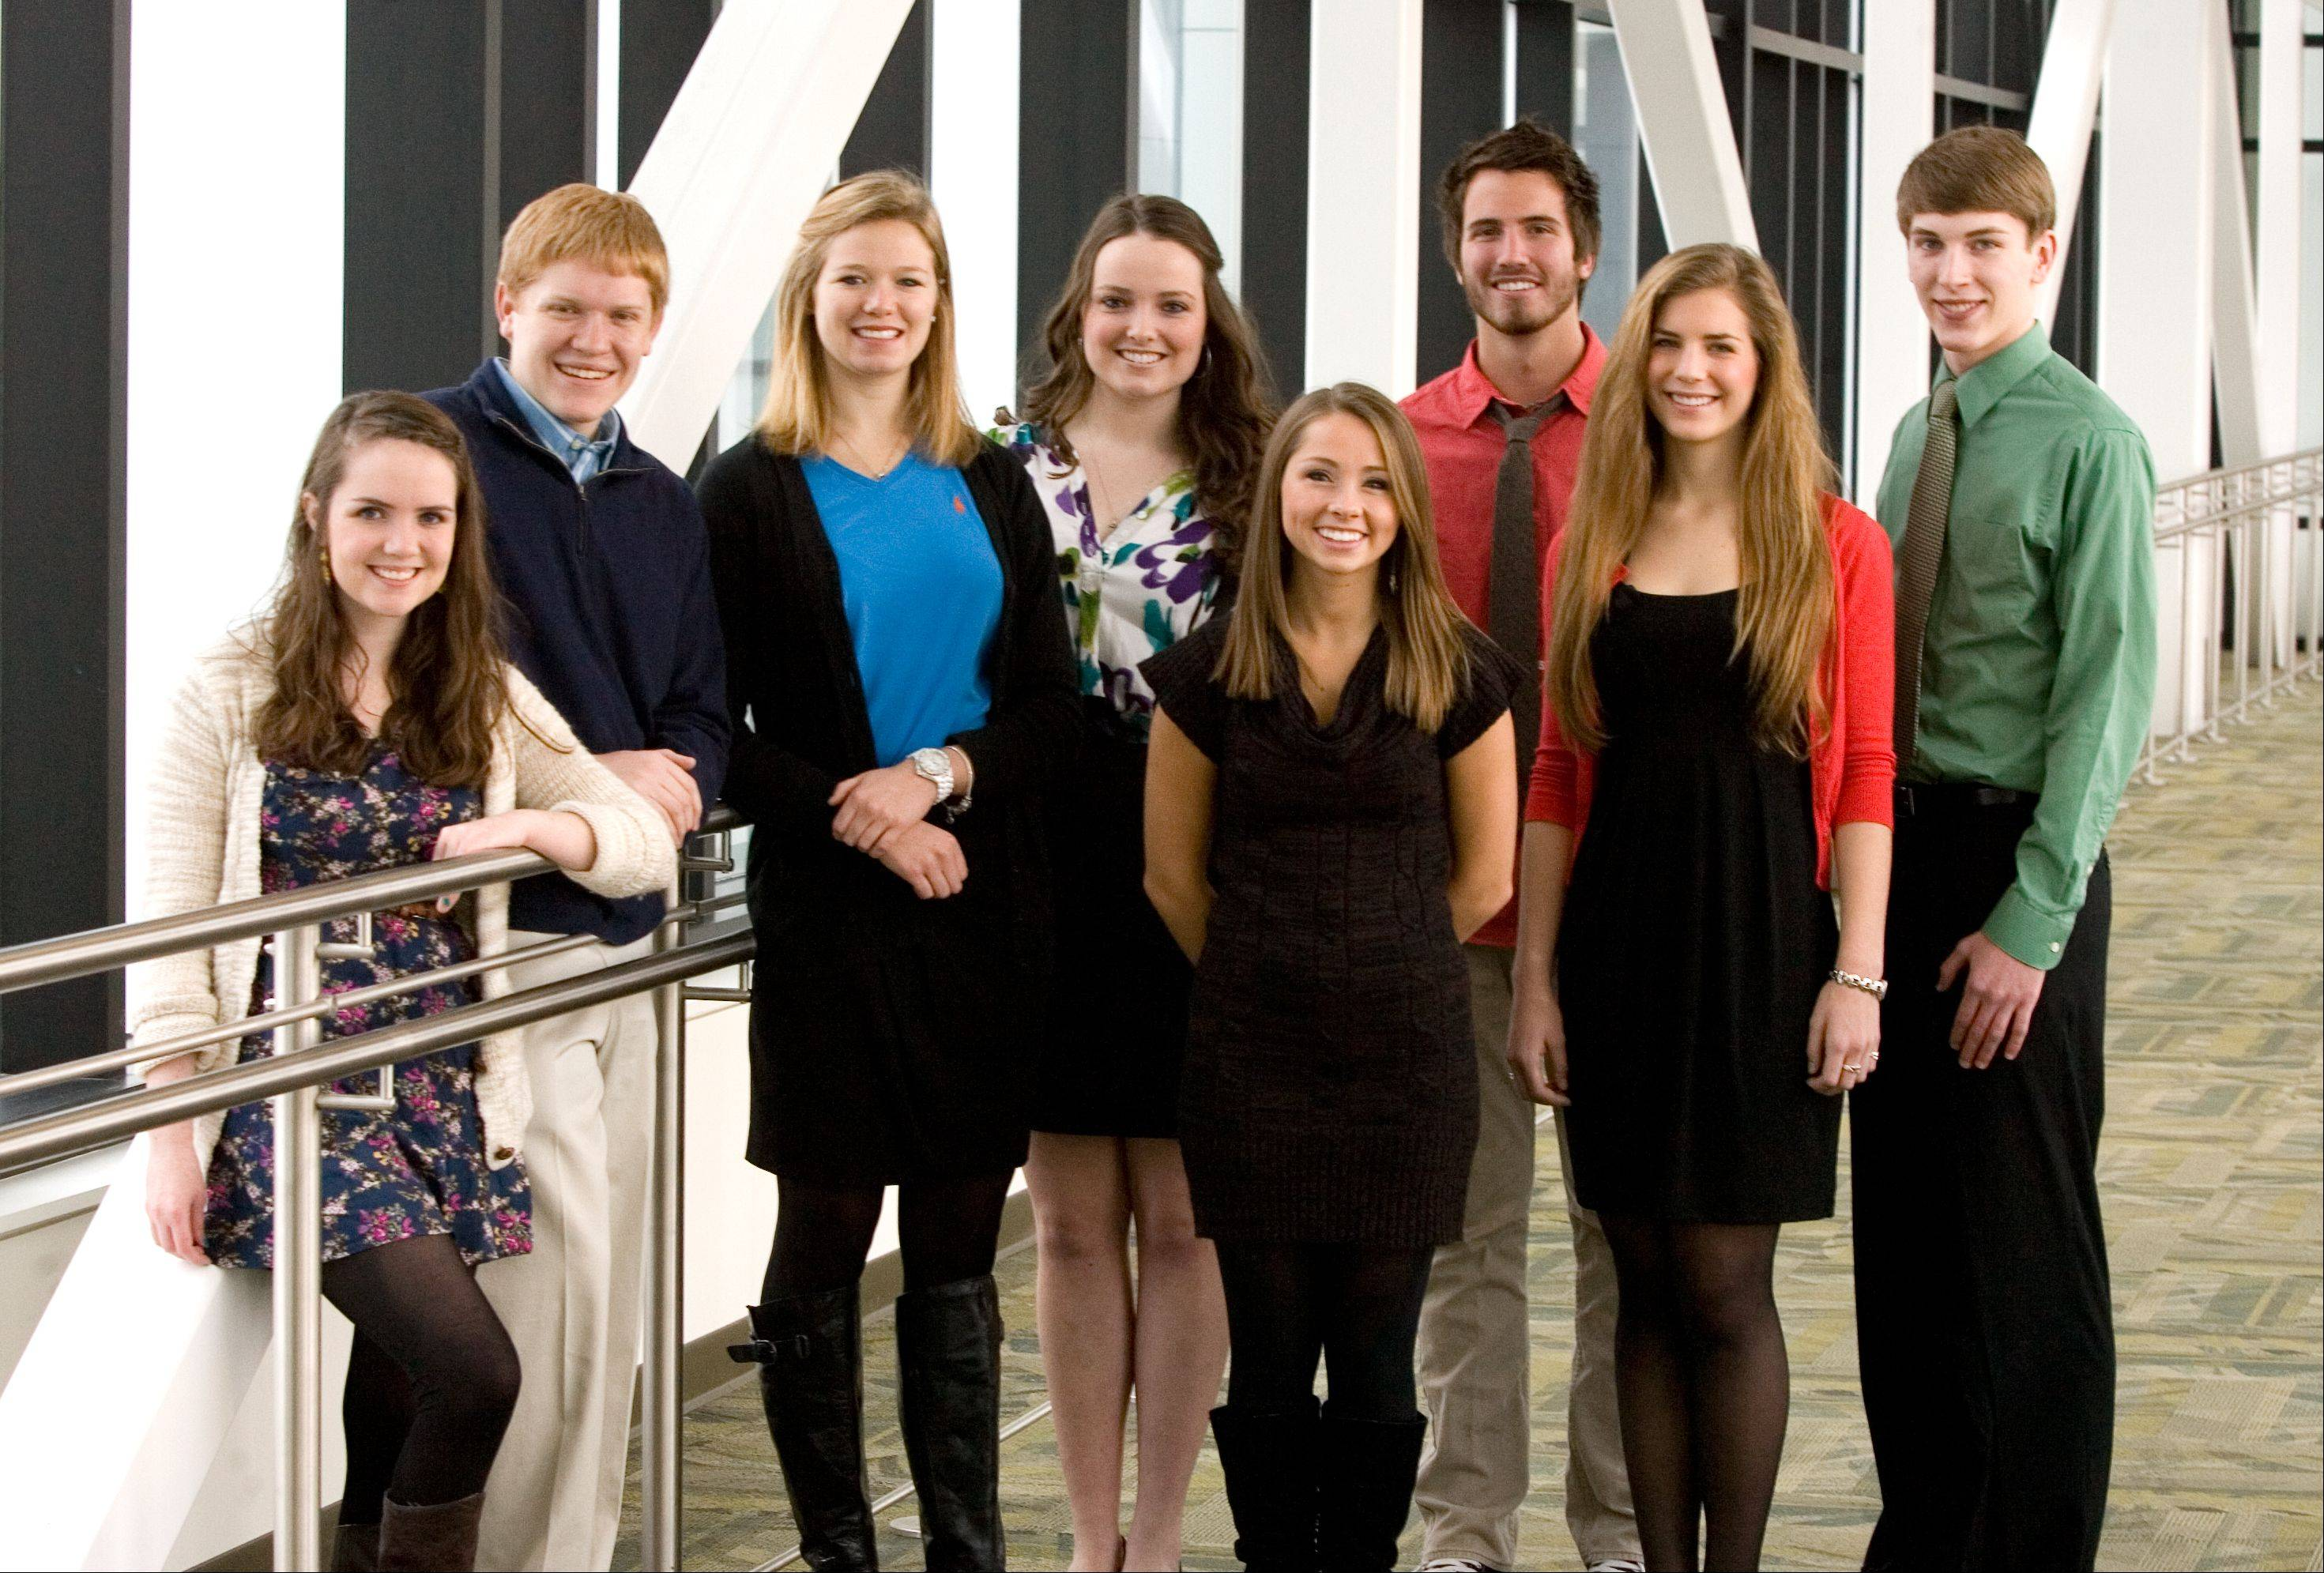 Meet the 2011-12 Daily Herald Leadership Team